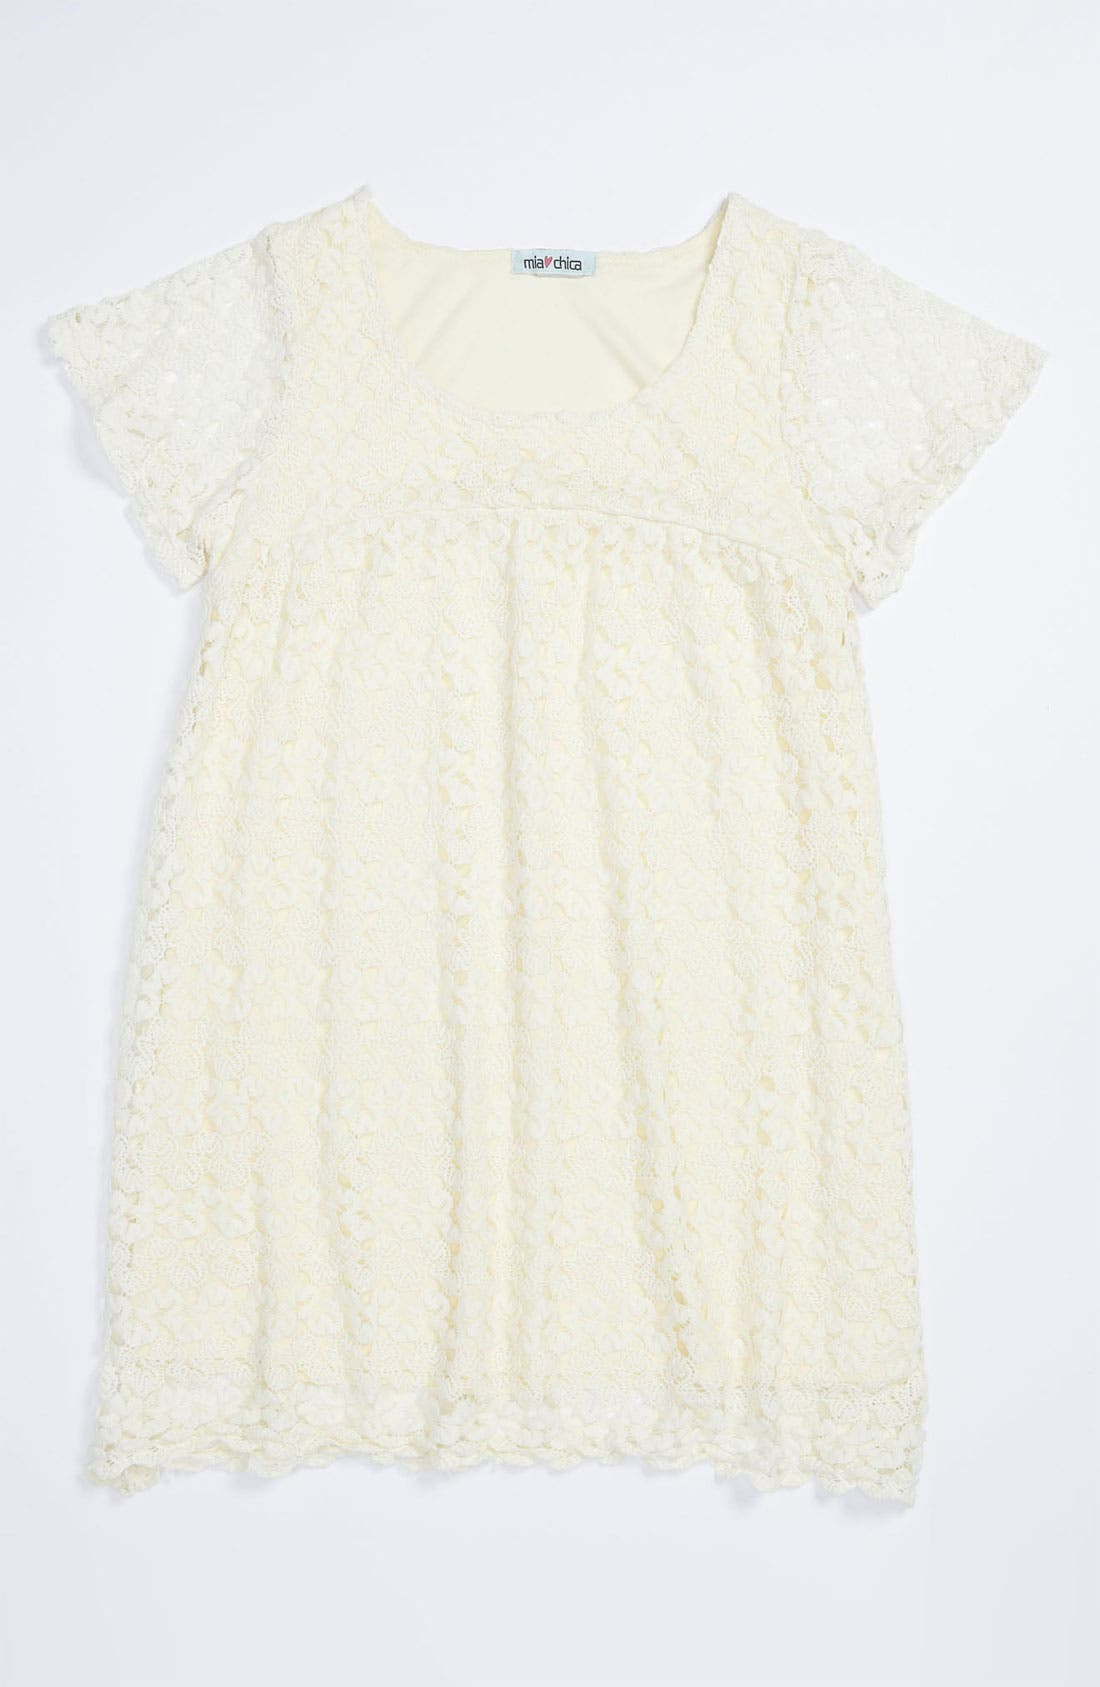 Main Image - Mia Chica Crochet Dress (Big Girls)